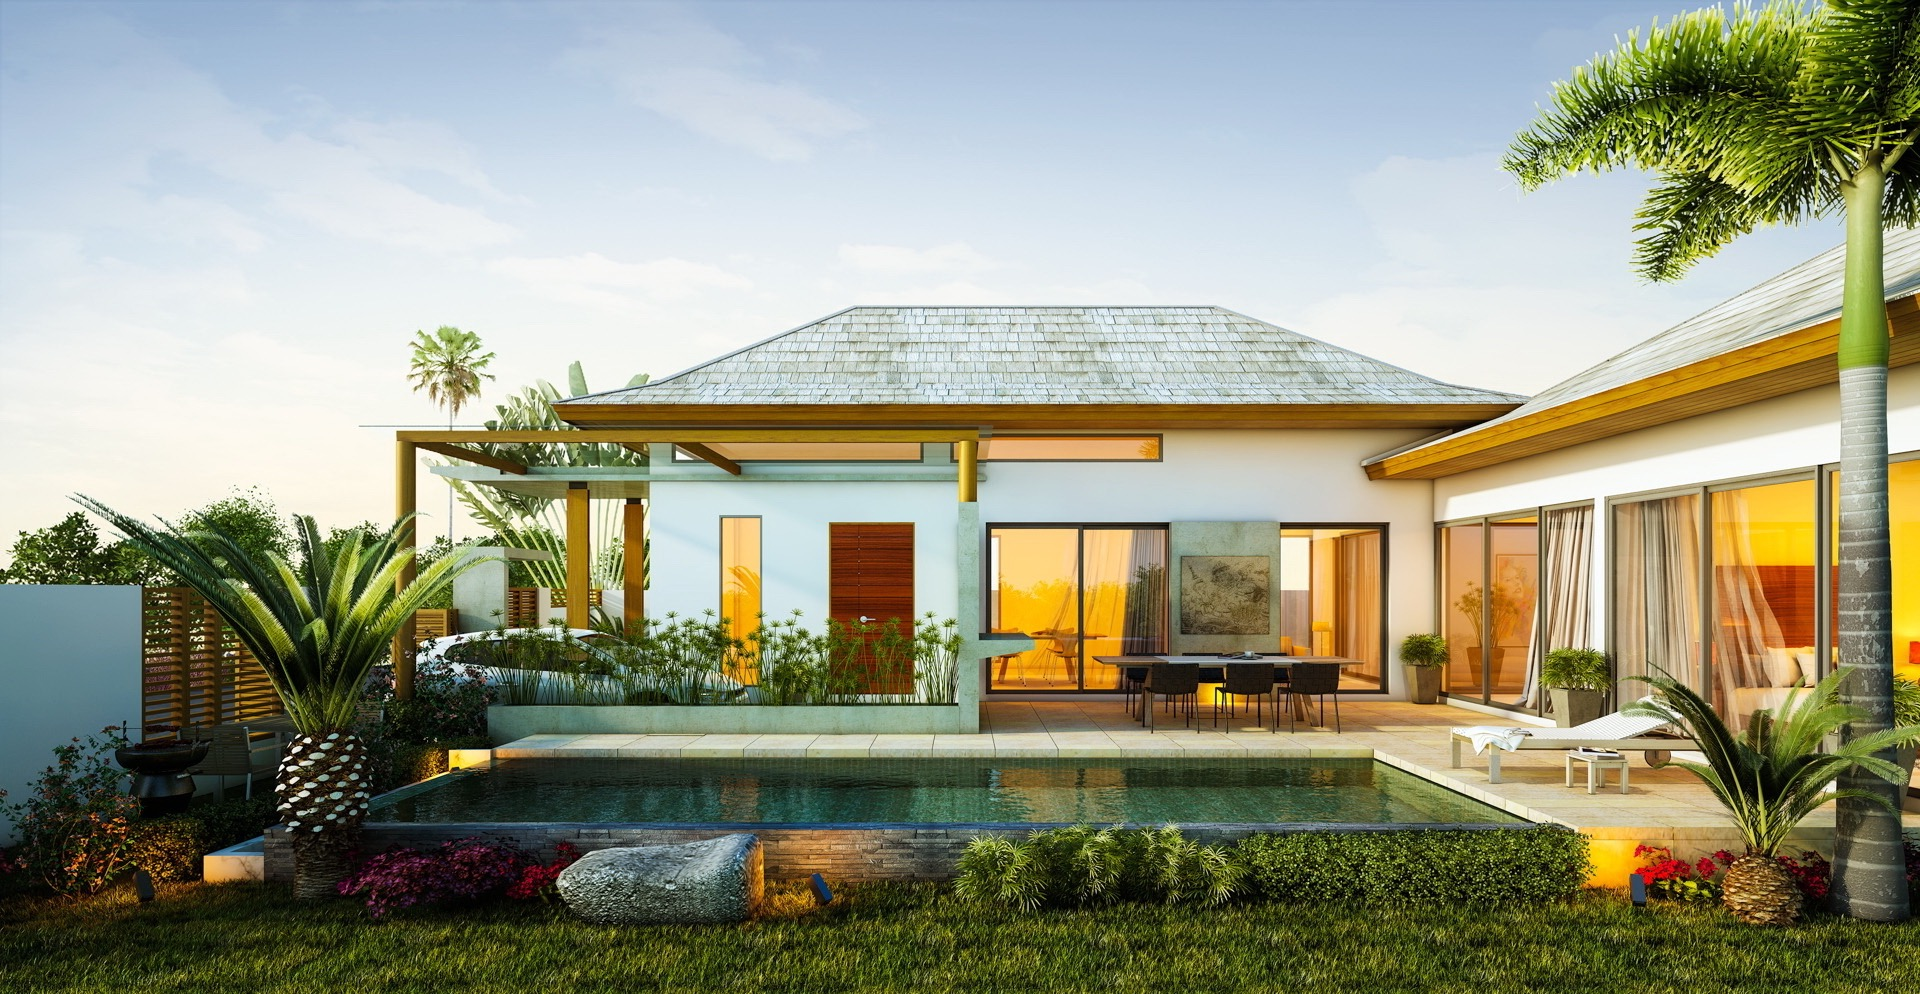 exterior tropical homes design with relaxing ambiance